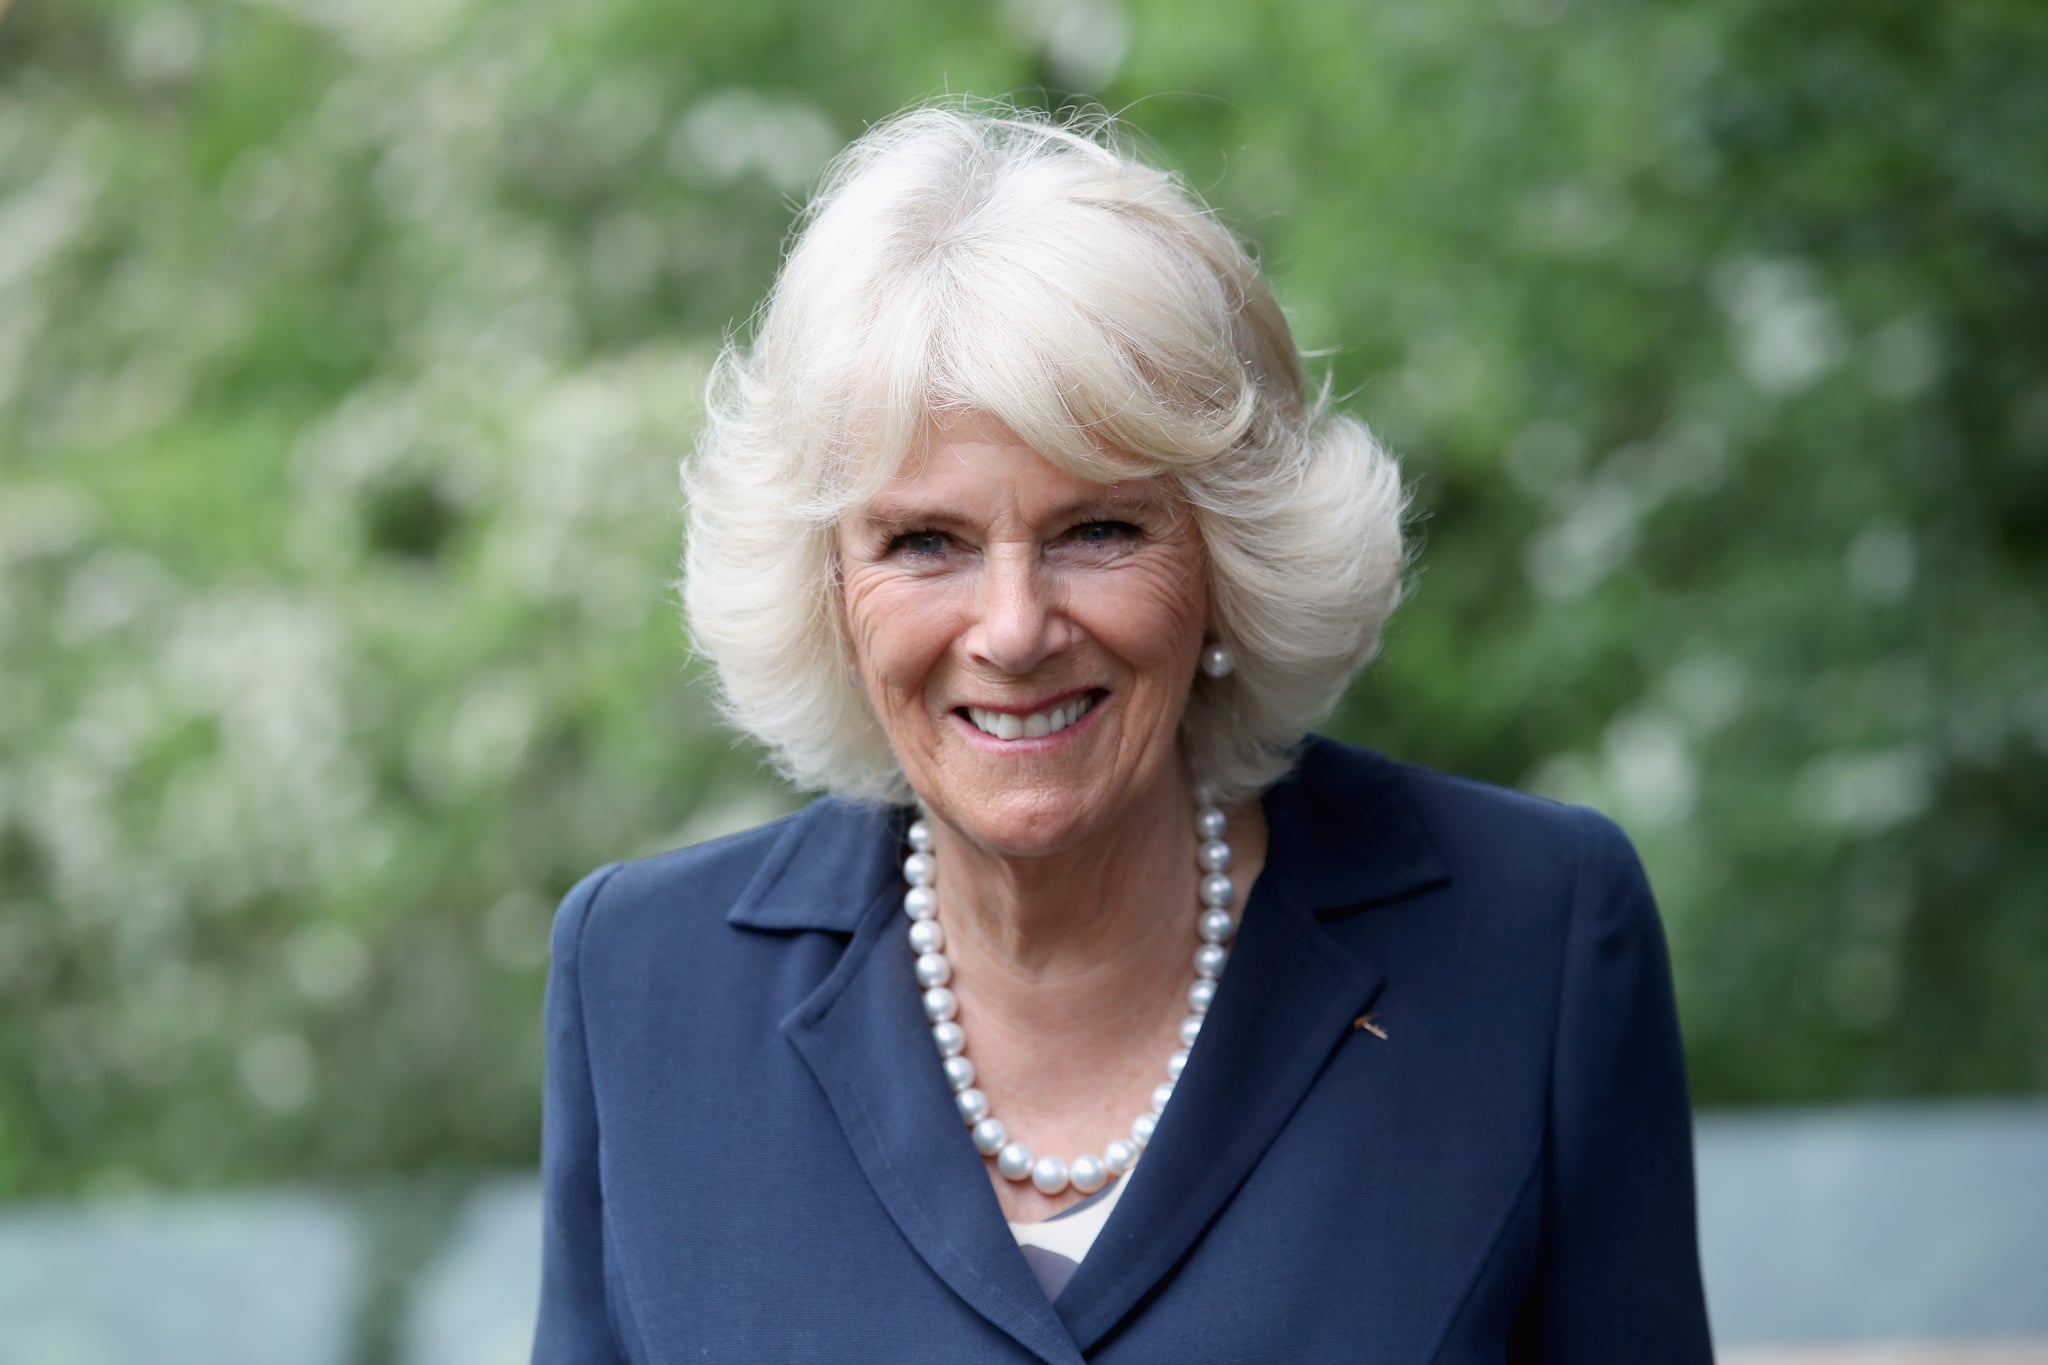 OXFORD, ENGLAND - MAY 16:  Camilla, Duchess of Cornwall visits Maggie's Oxford to see how the Centre supports people with cancer on May 16, 2017 in Oxford, England. During her visit HRH will meet people living with cancer and observe Maggie?s programme of support in action including a Talking Heads session and a yoga class.  (Photo by Chris Jackson/Getty Images)